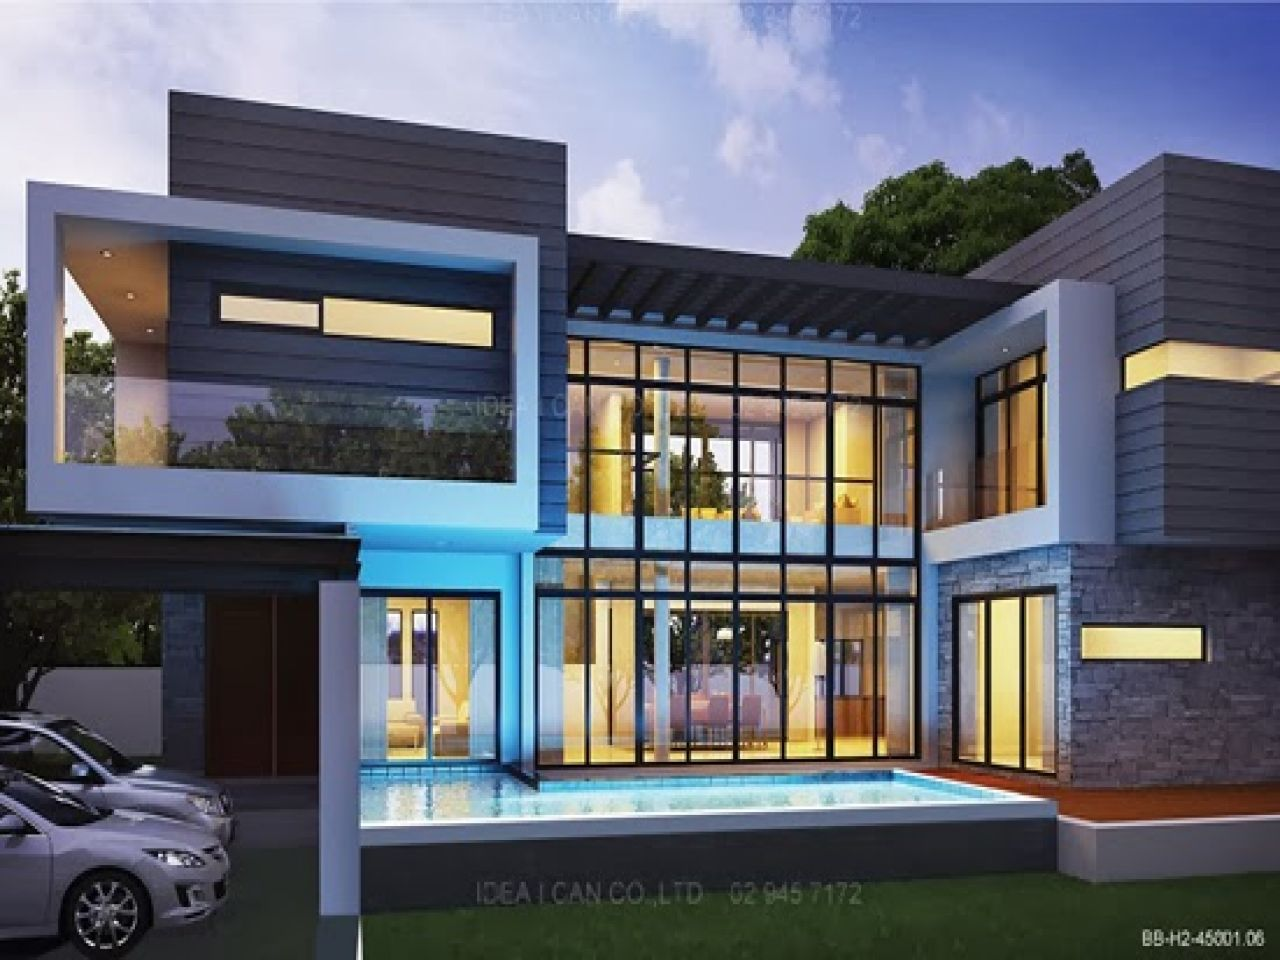 Residential 2 storey house plan modern 2 story house plans for Modern triplex house designs